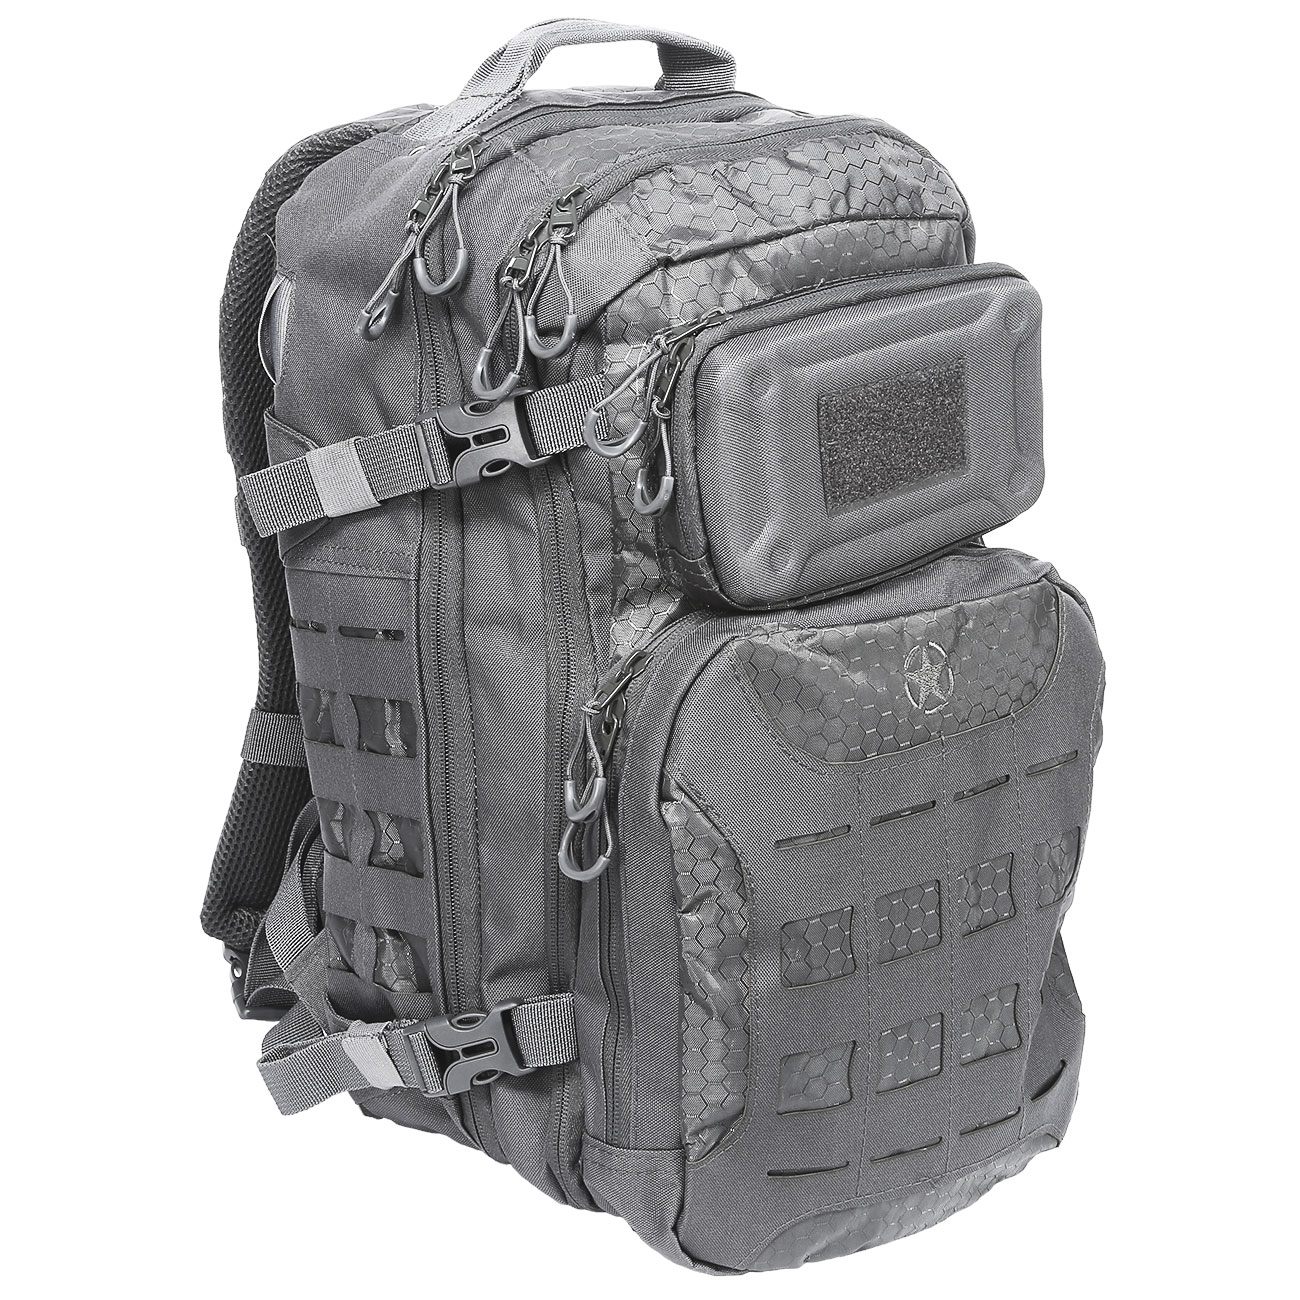 MFH Rucksack Operation I 30 Liter urban grau 0